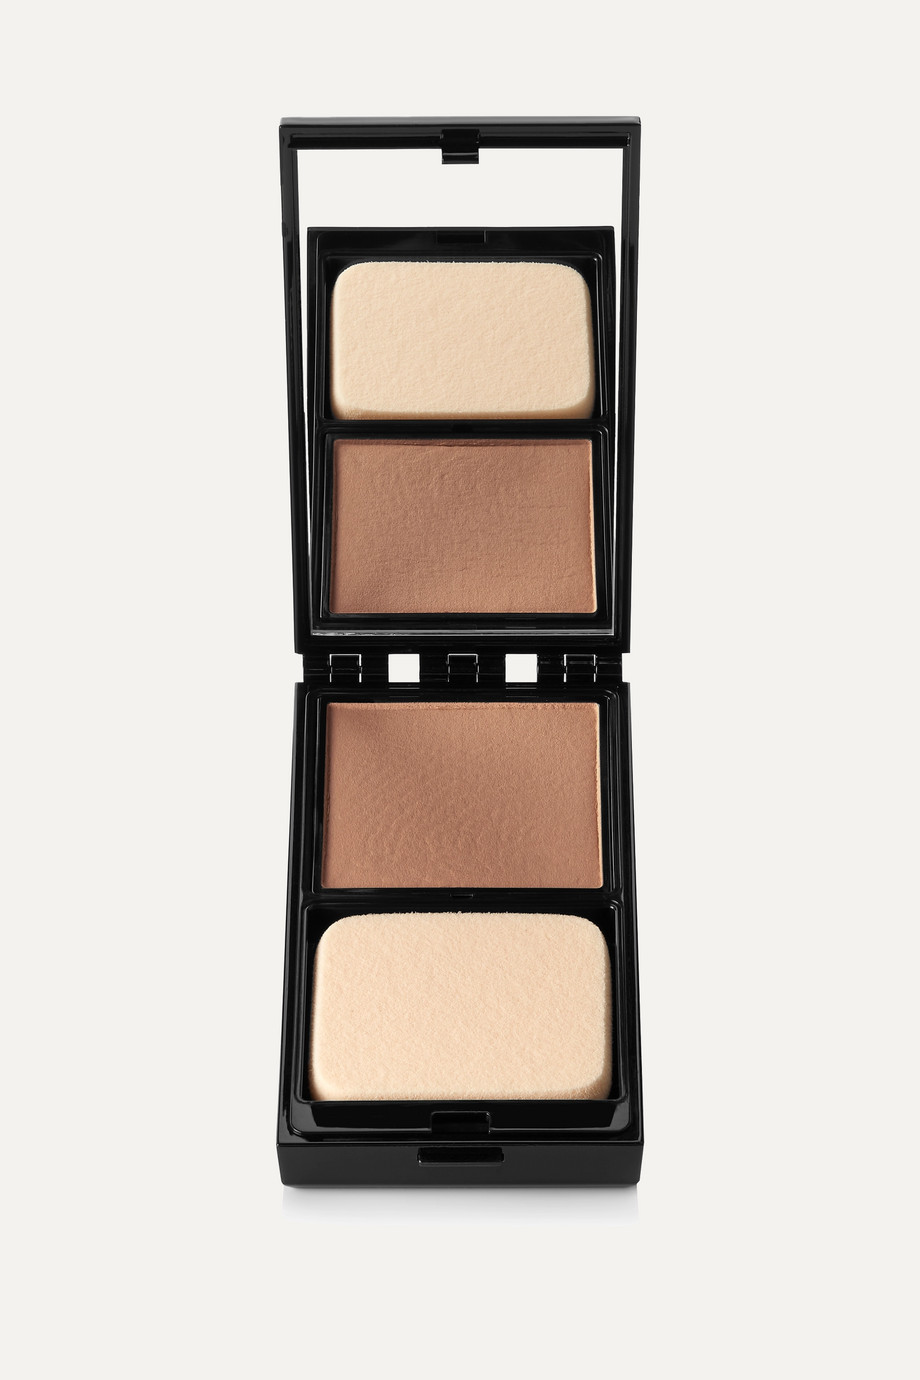 Serge Lutens Teint Si Fin Compact Foundation – D10 – Foundation